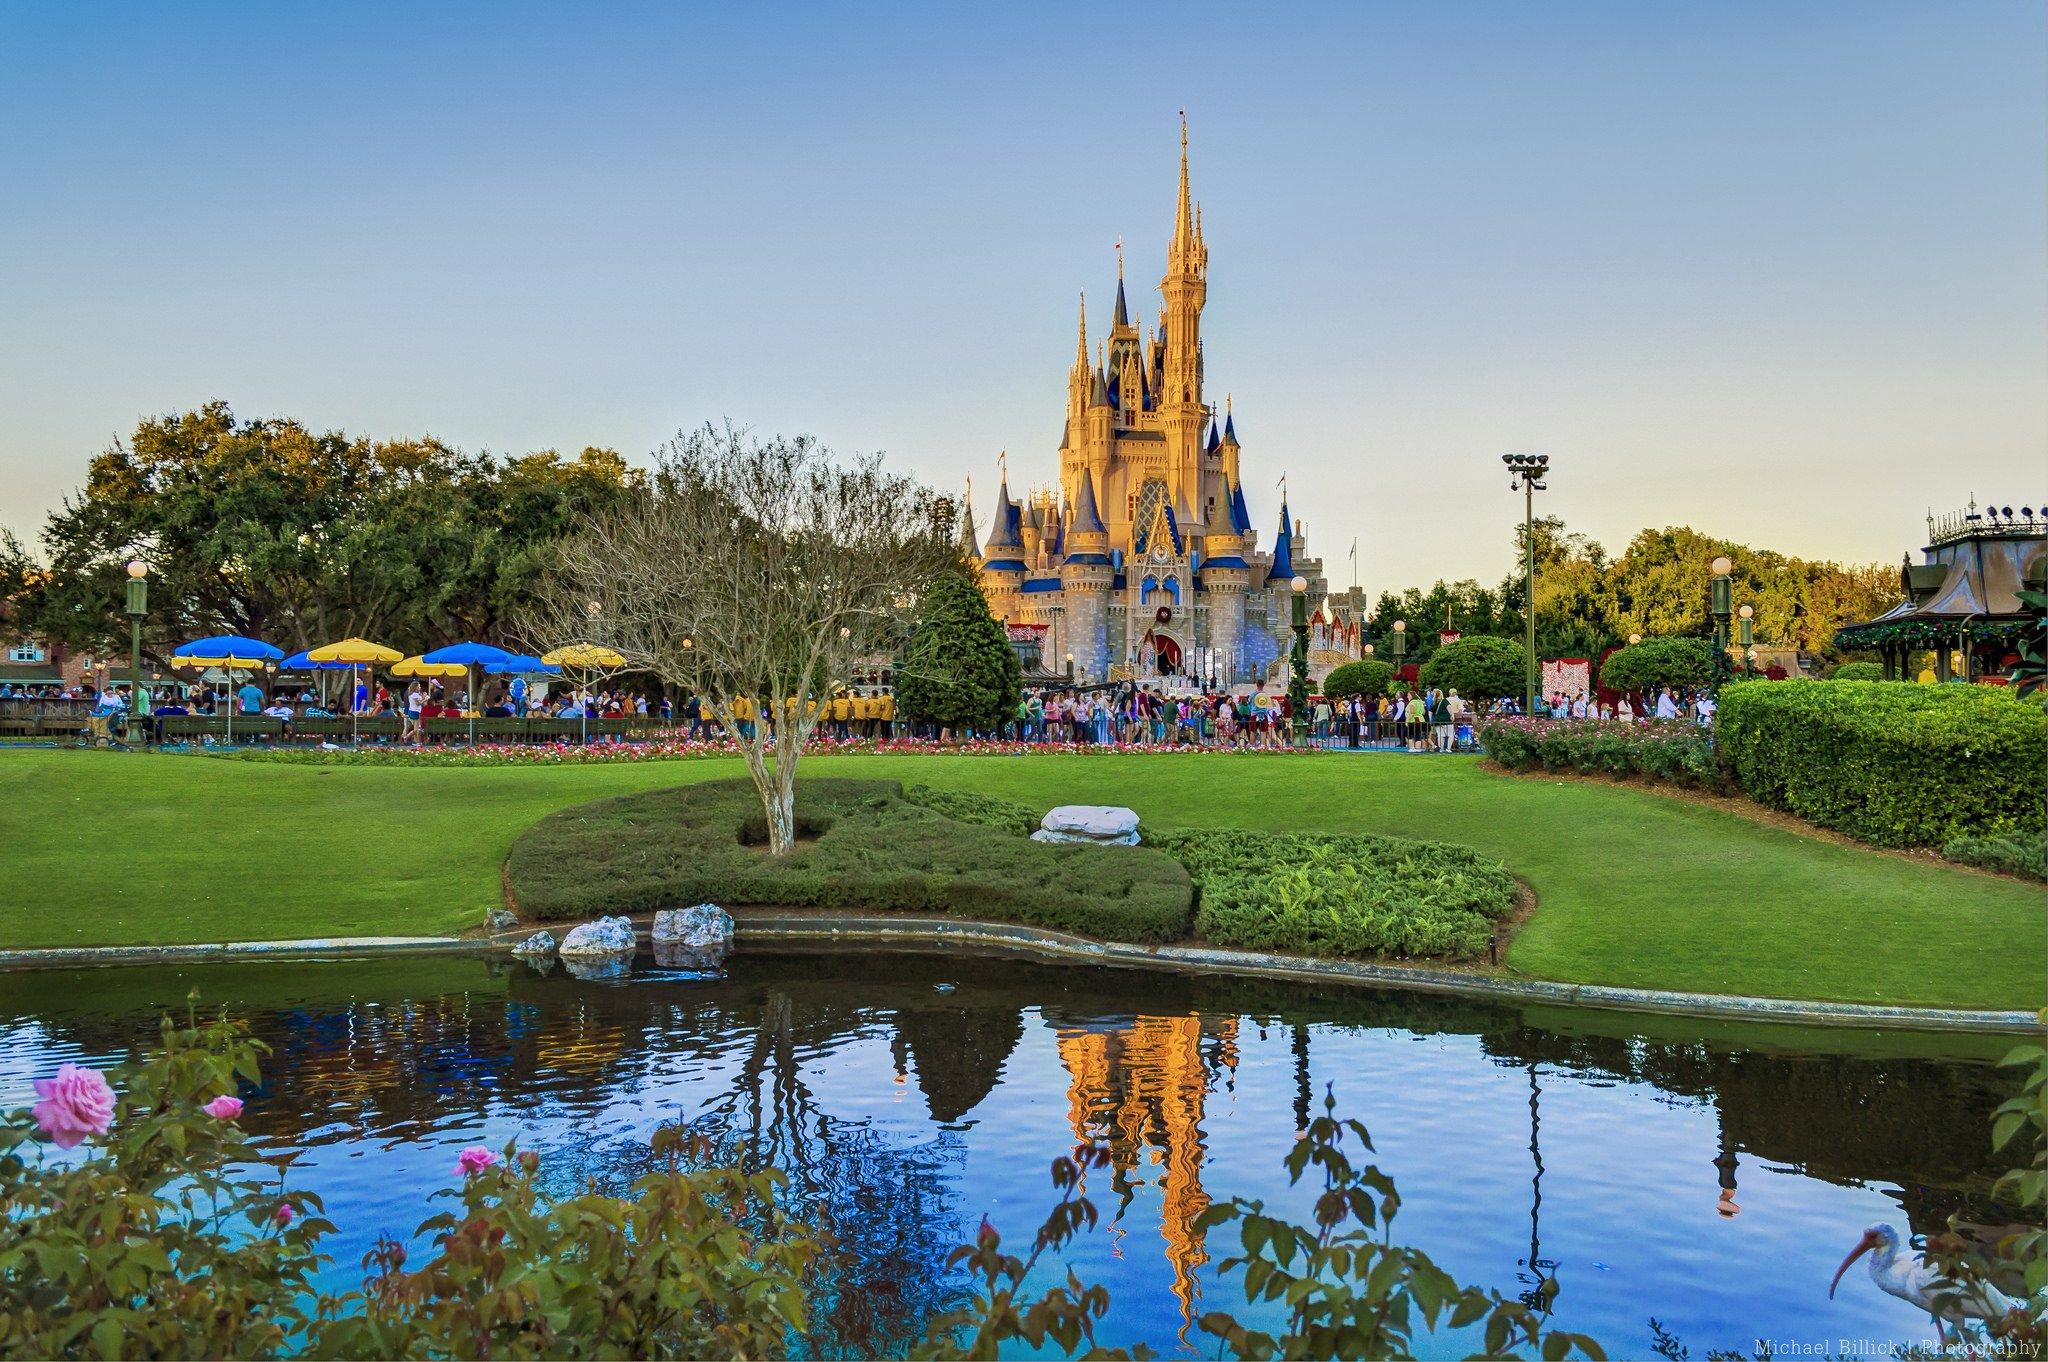 Walt disney world resort disney orlando floride florida usa universal studio castel hotel mickey night light stores entertainment parc childrens offices